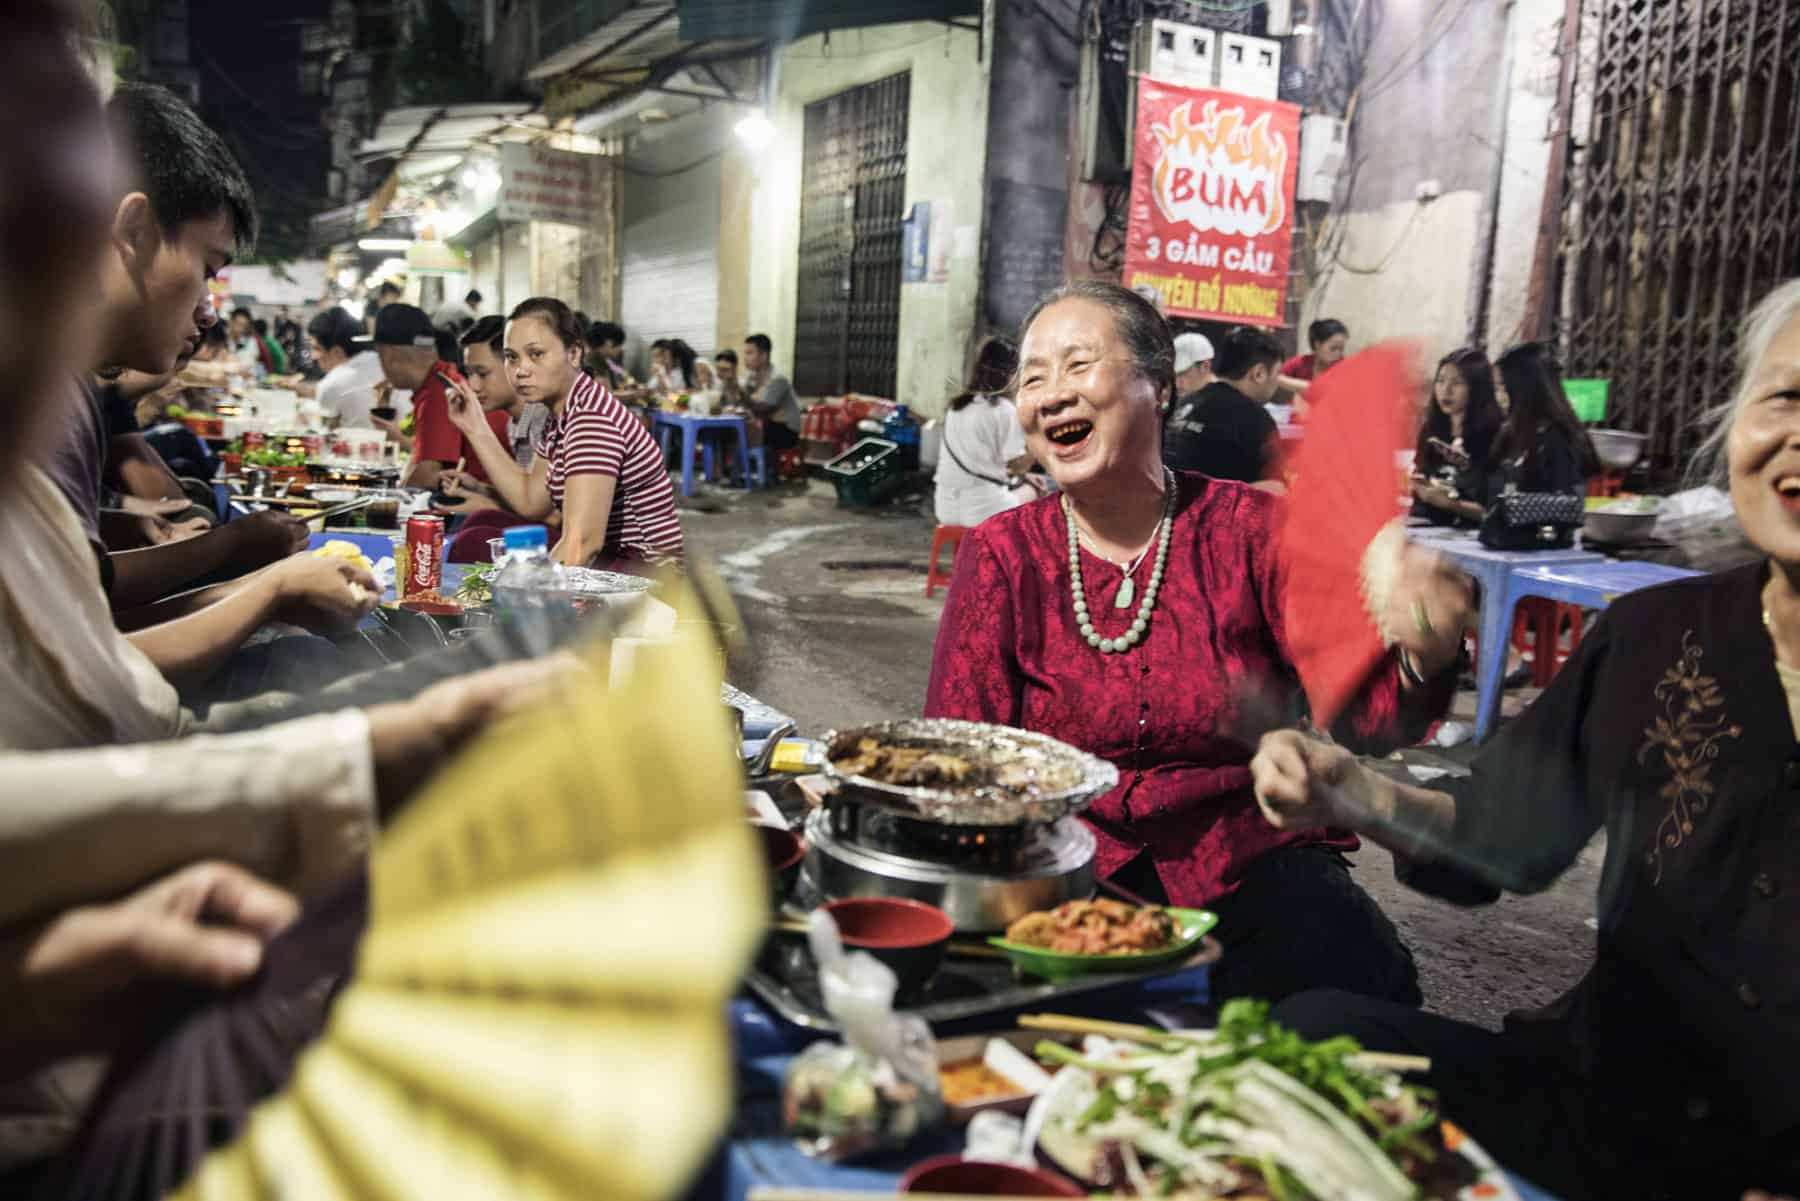 Evening Street food scene in Hanoi with locals